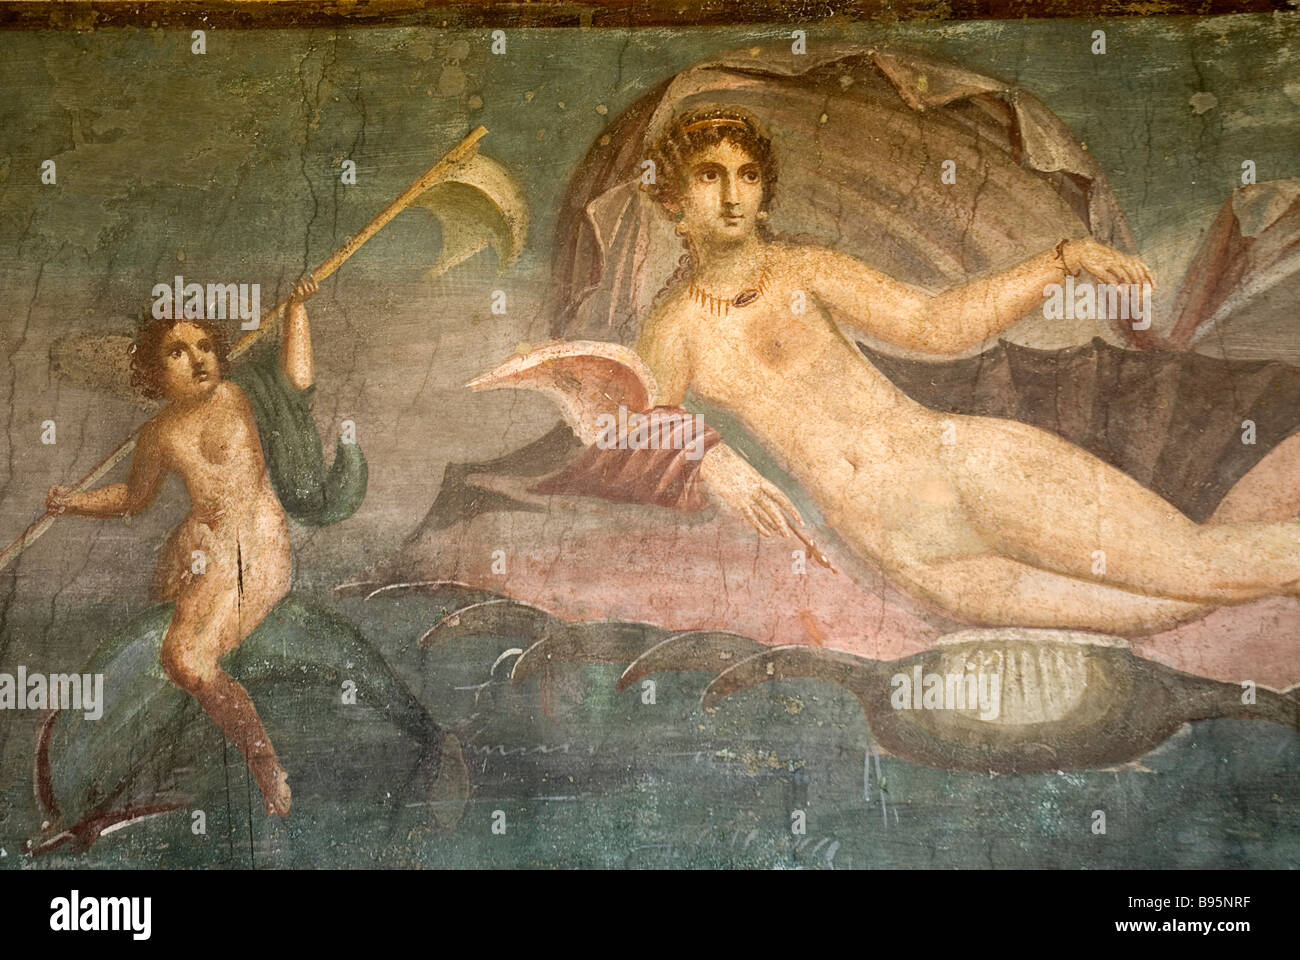 Italy, Campania, Napoli, Pompeii. Fresco giving name to the House of Venus depicting Venus in a shell accompanied - Stock Image